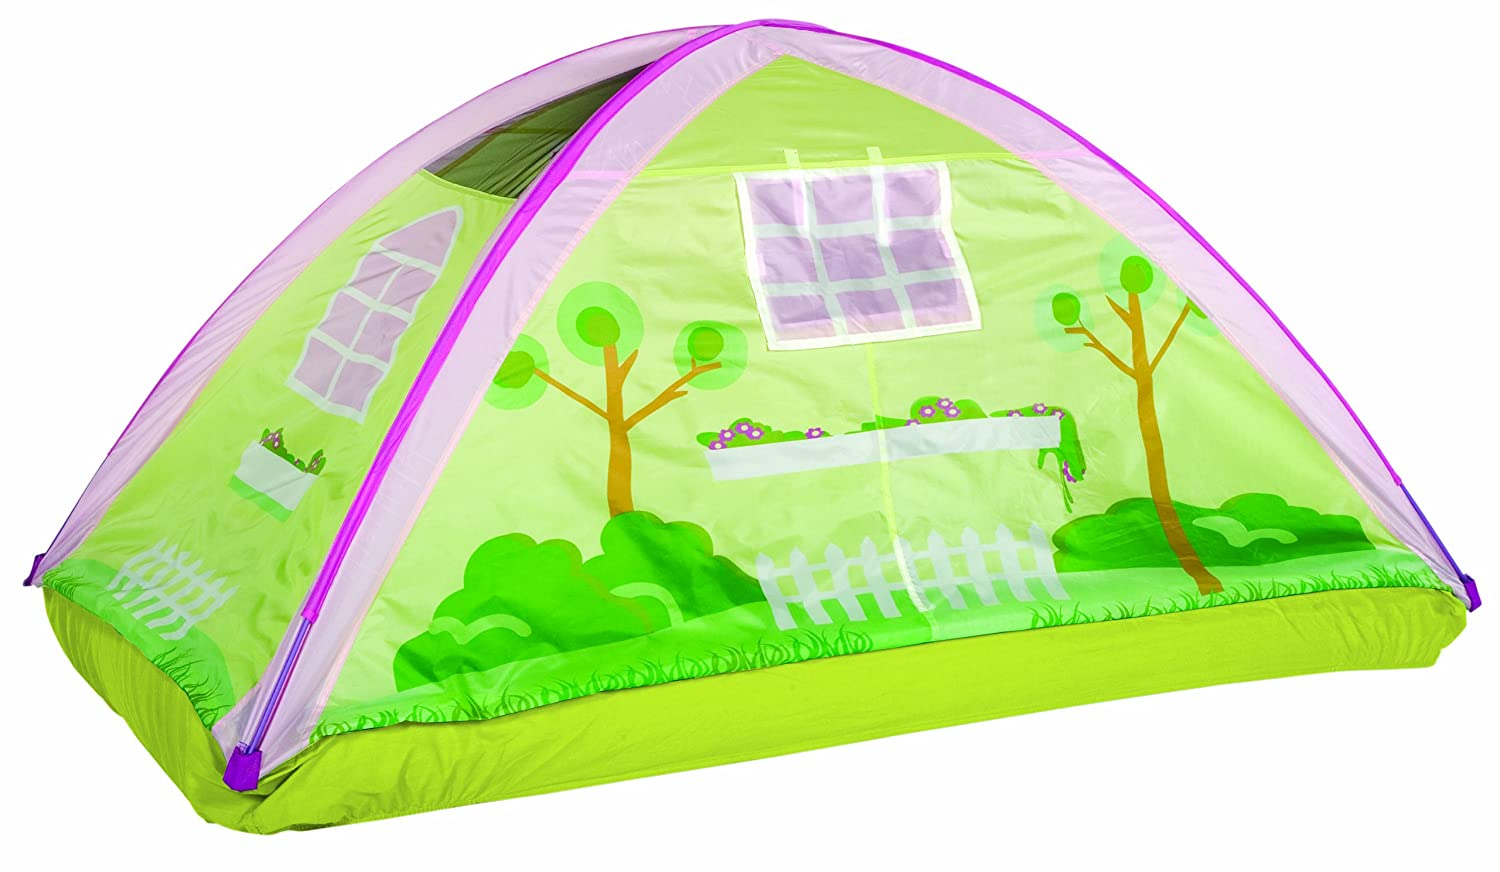 Amazon.com Pacific Play Tents Kids Cottage Bed Tent Playhouse - Twin Size Toys u0026 Games  sc 1 st  Amazon.com & Amazon.com: Pacific Play Tents Kids Cottage Bed Tent Playhouse ...